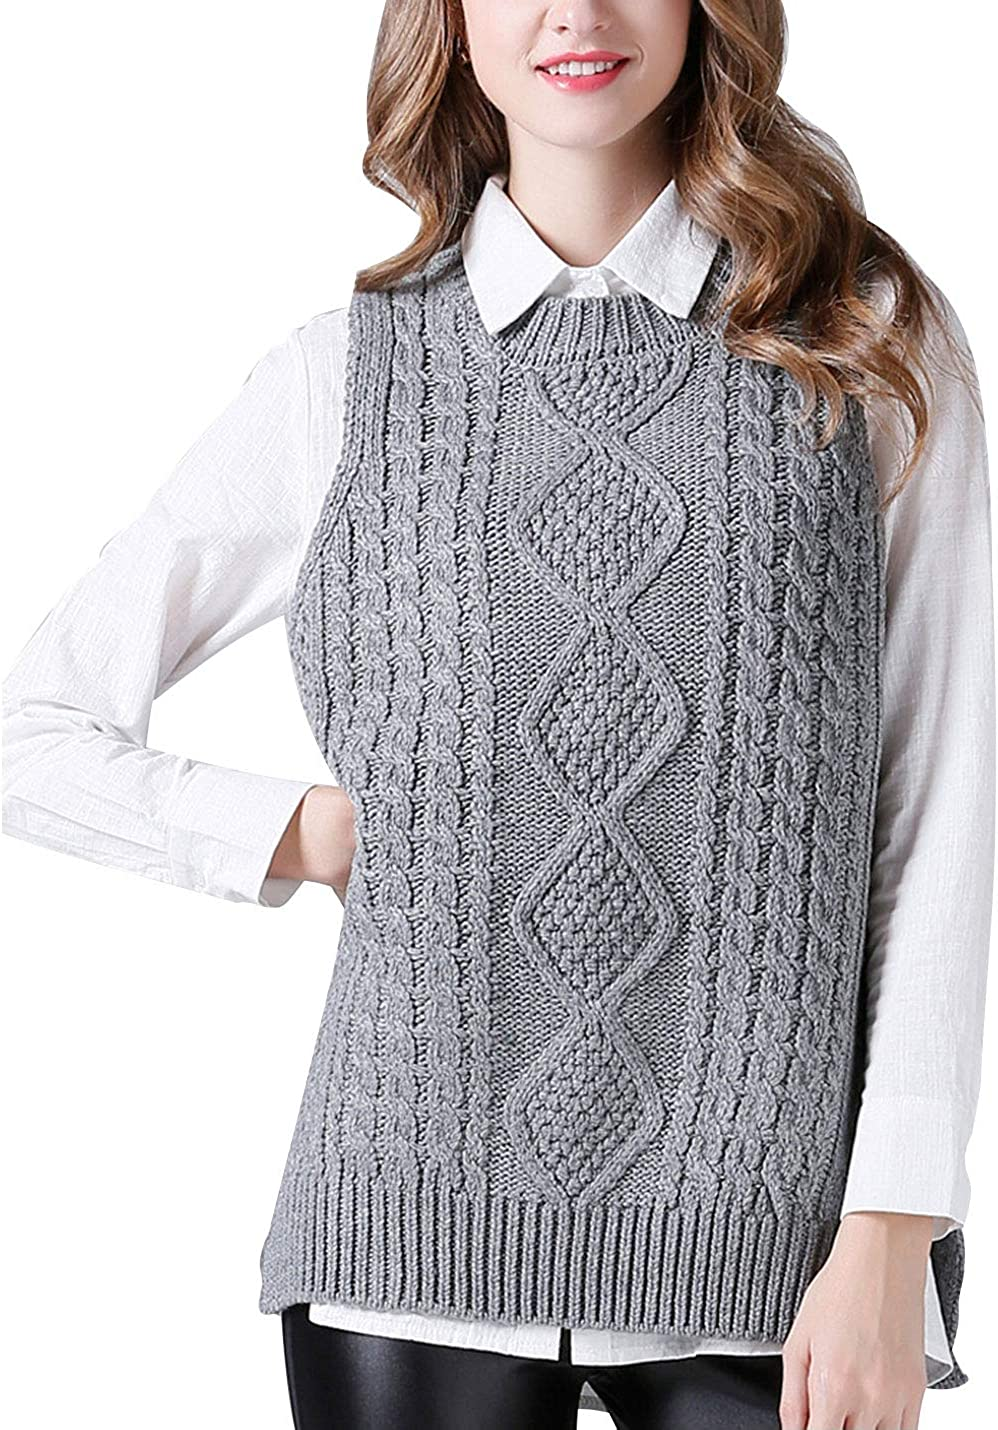 PUWEI Women's O Neck Sleeveless Pullover Cable Knitted Sweater Vests Jumpers